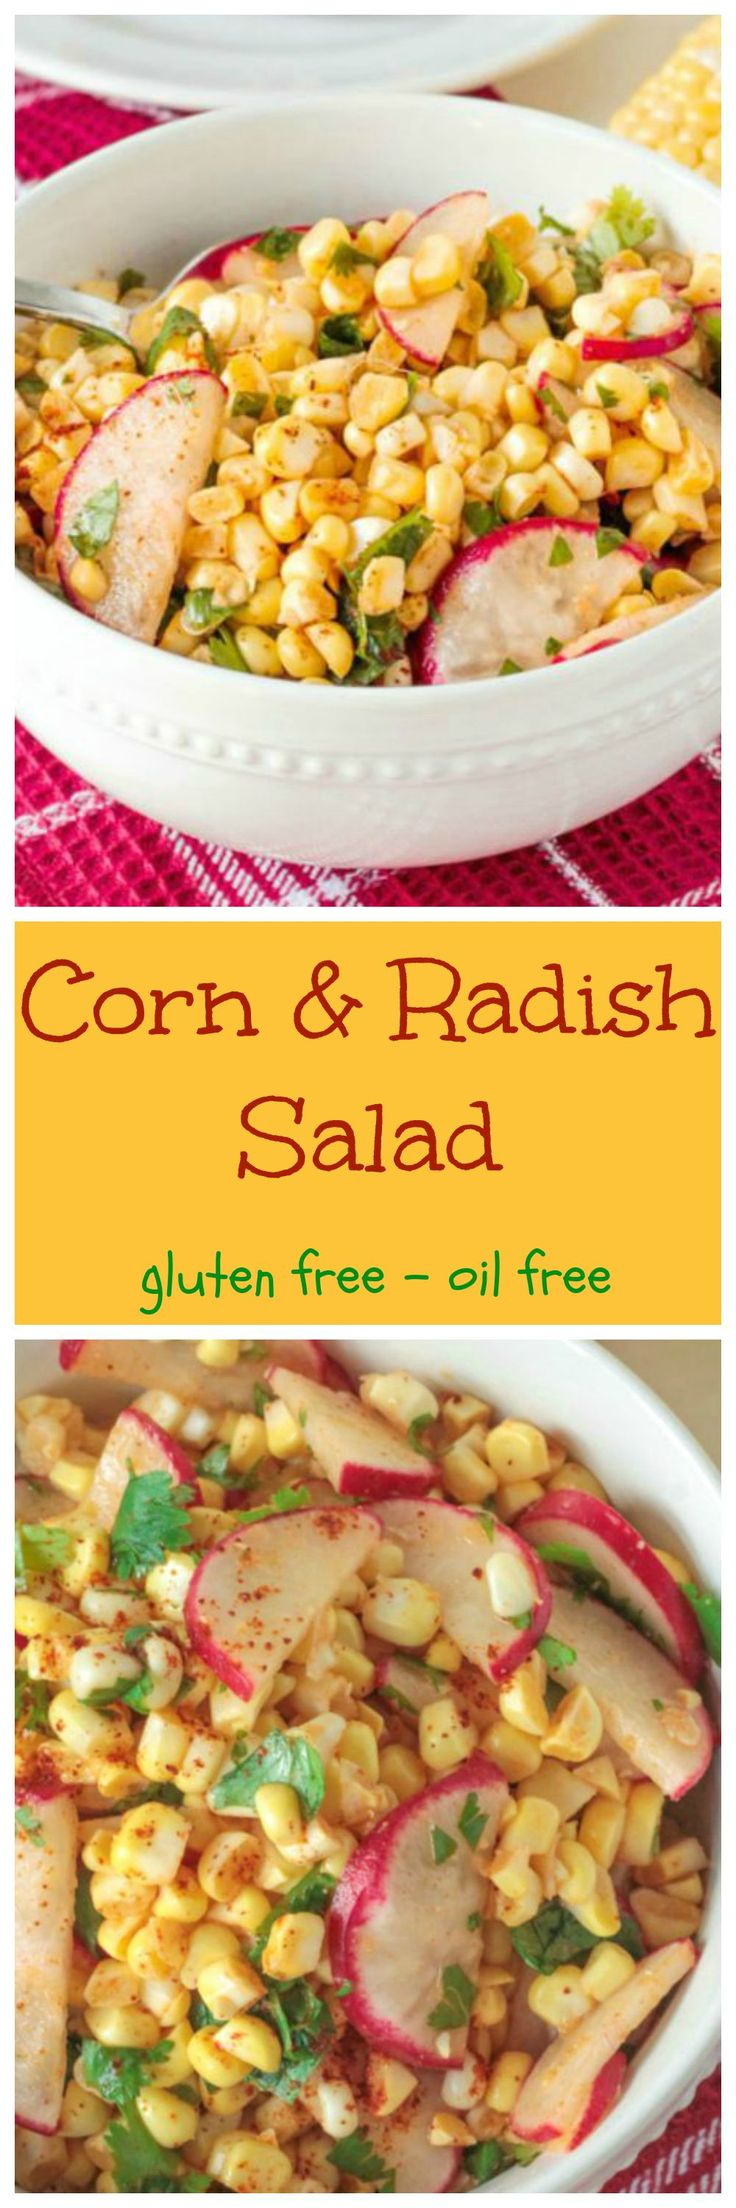 Raw Corn & Radish Salad - super simple with only a few ingredients, this is the perfect salad for any BBQ, picnic, potluck or party!